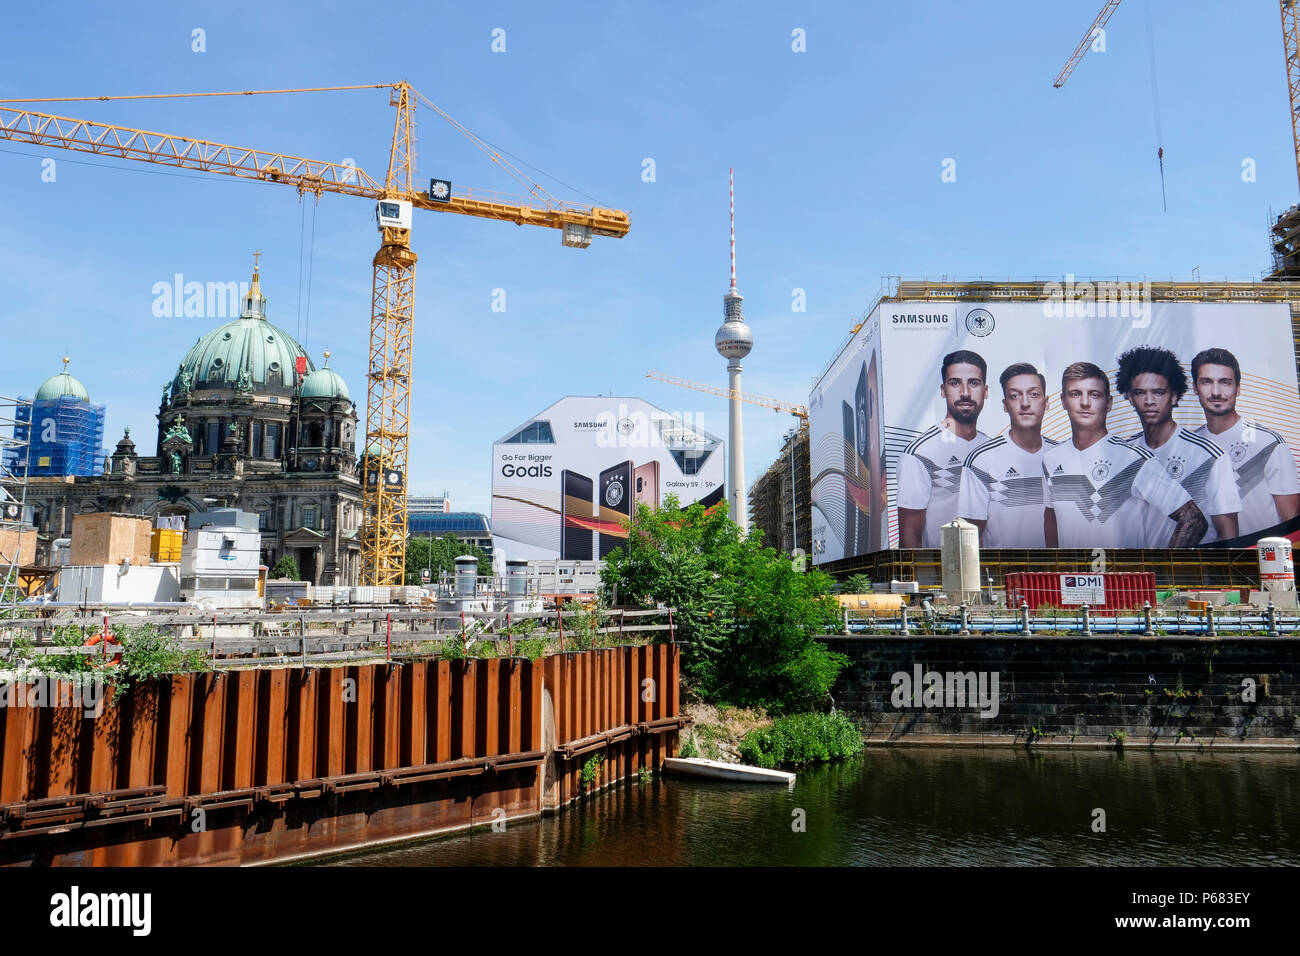 GERMANY, Berlin, large Samsung advertisement with german soccer team during Fifa world championship 2018 in Russia - Stock Image